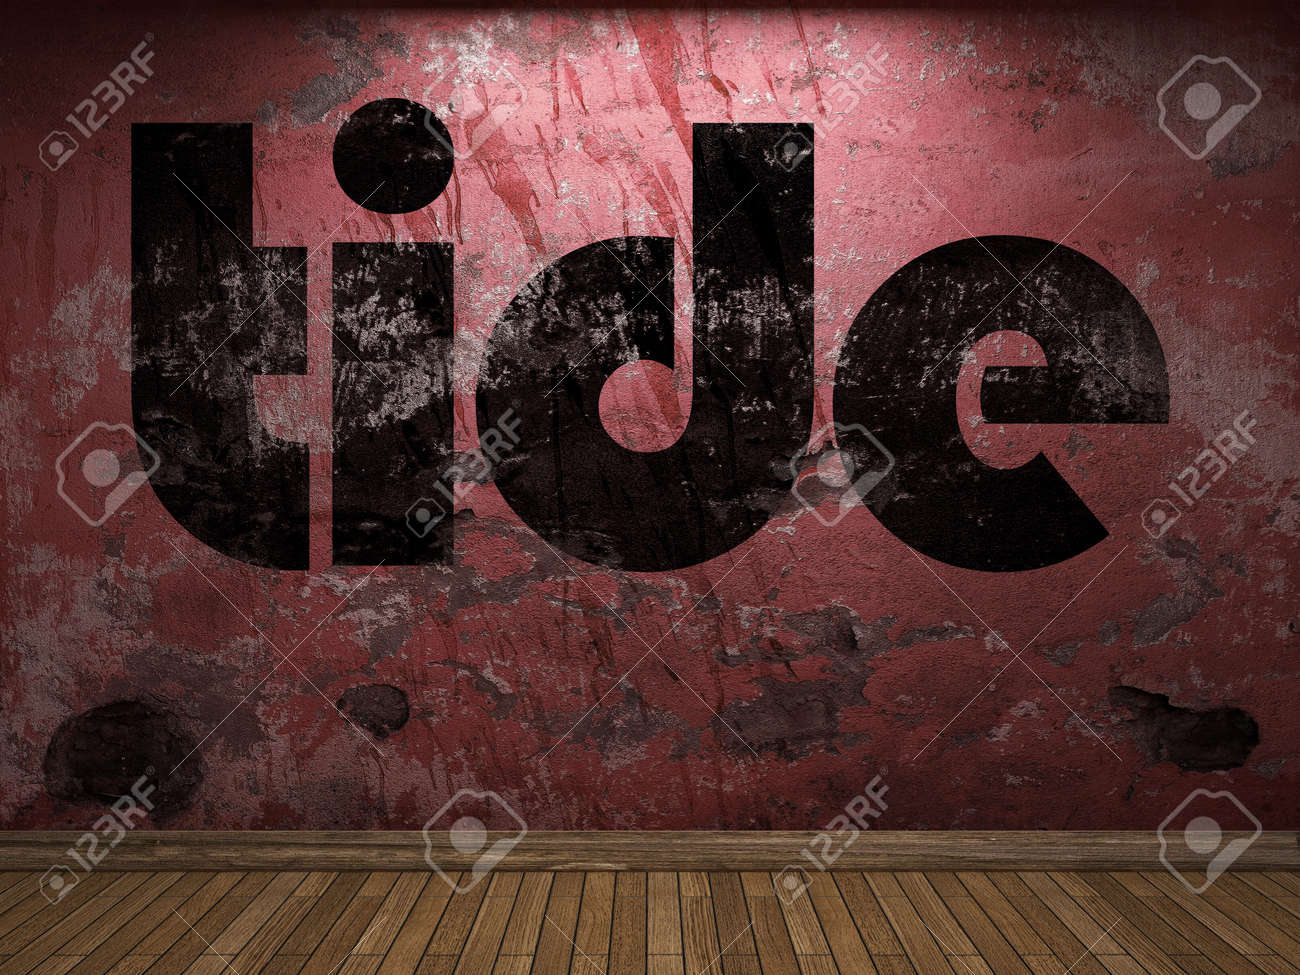 Tide word on red wall stock photo picture and royalty free image tide word on red wall stock photo 56274170 biocorpaavc